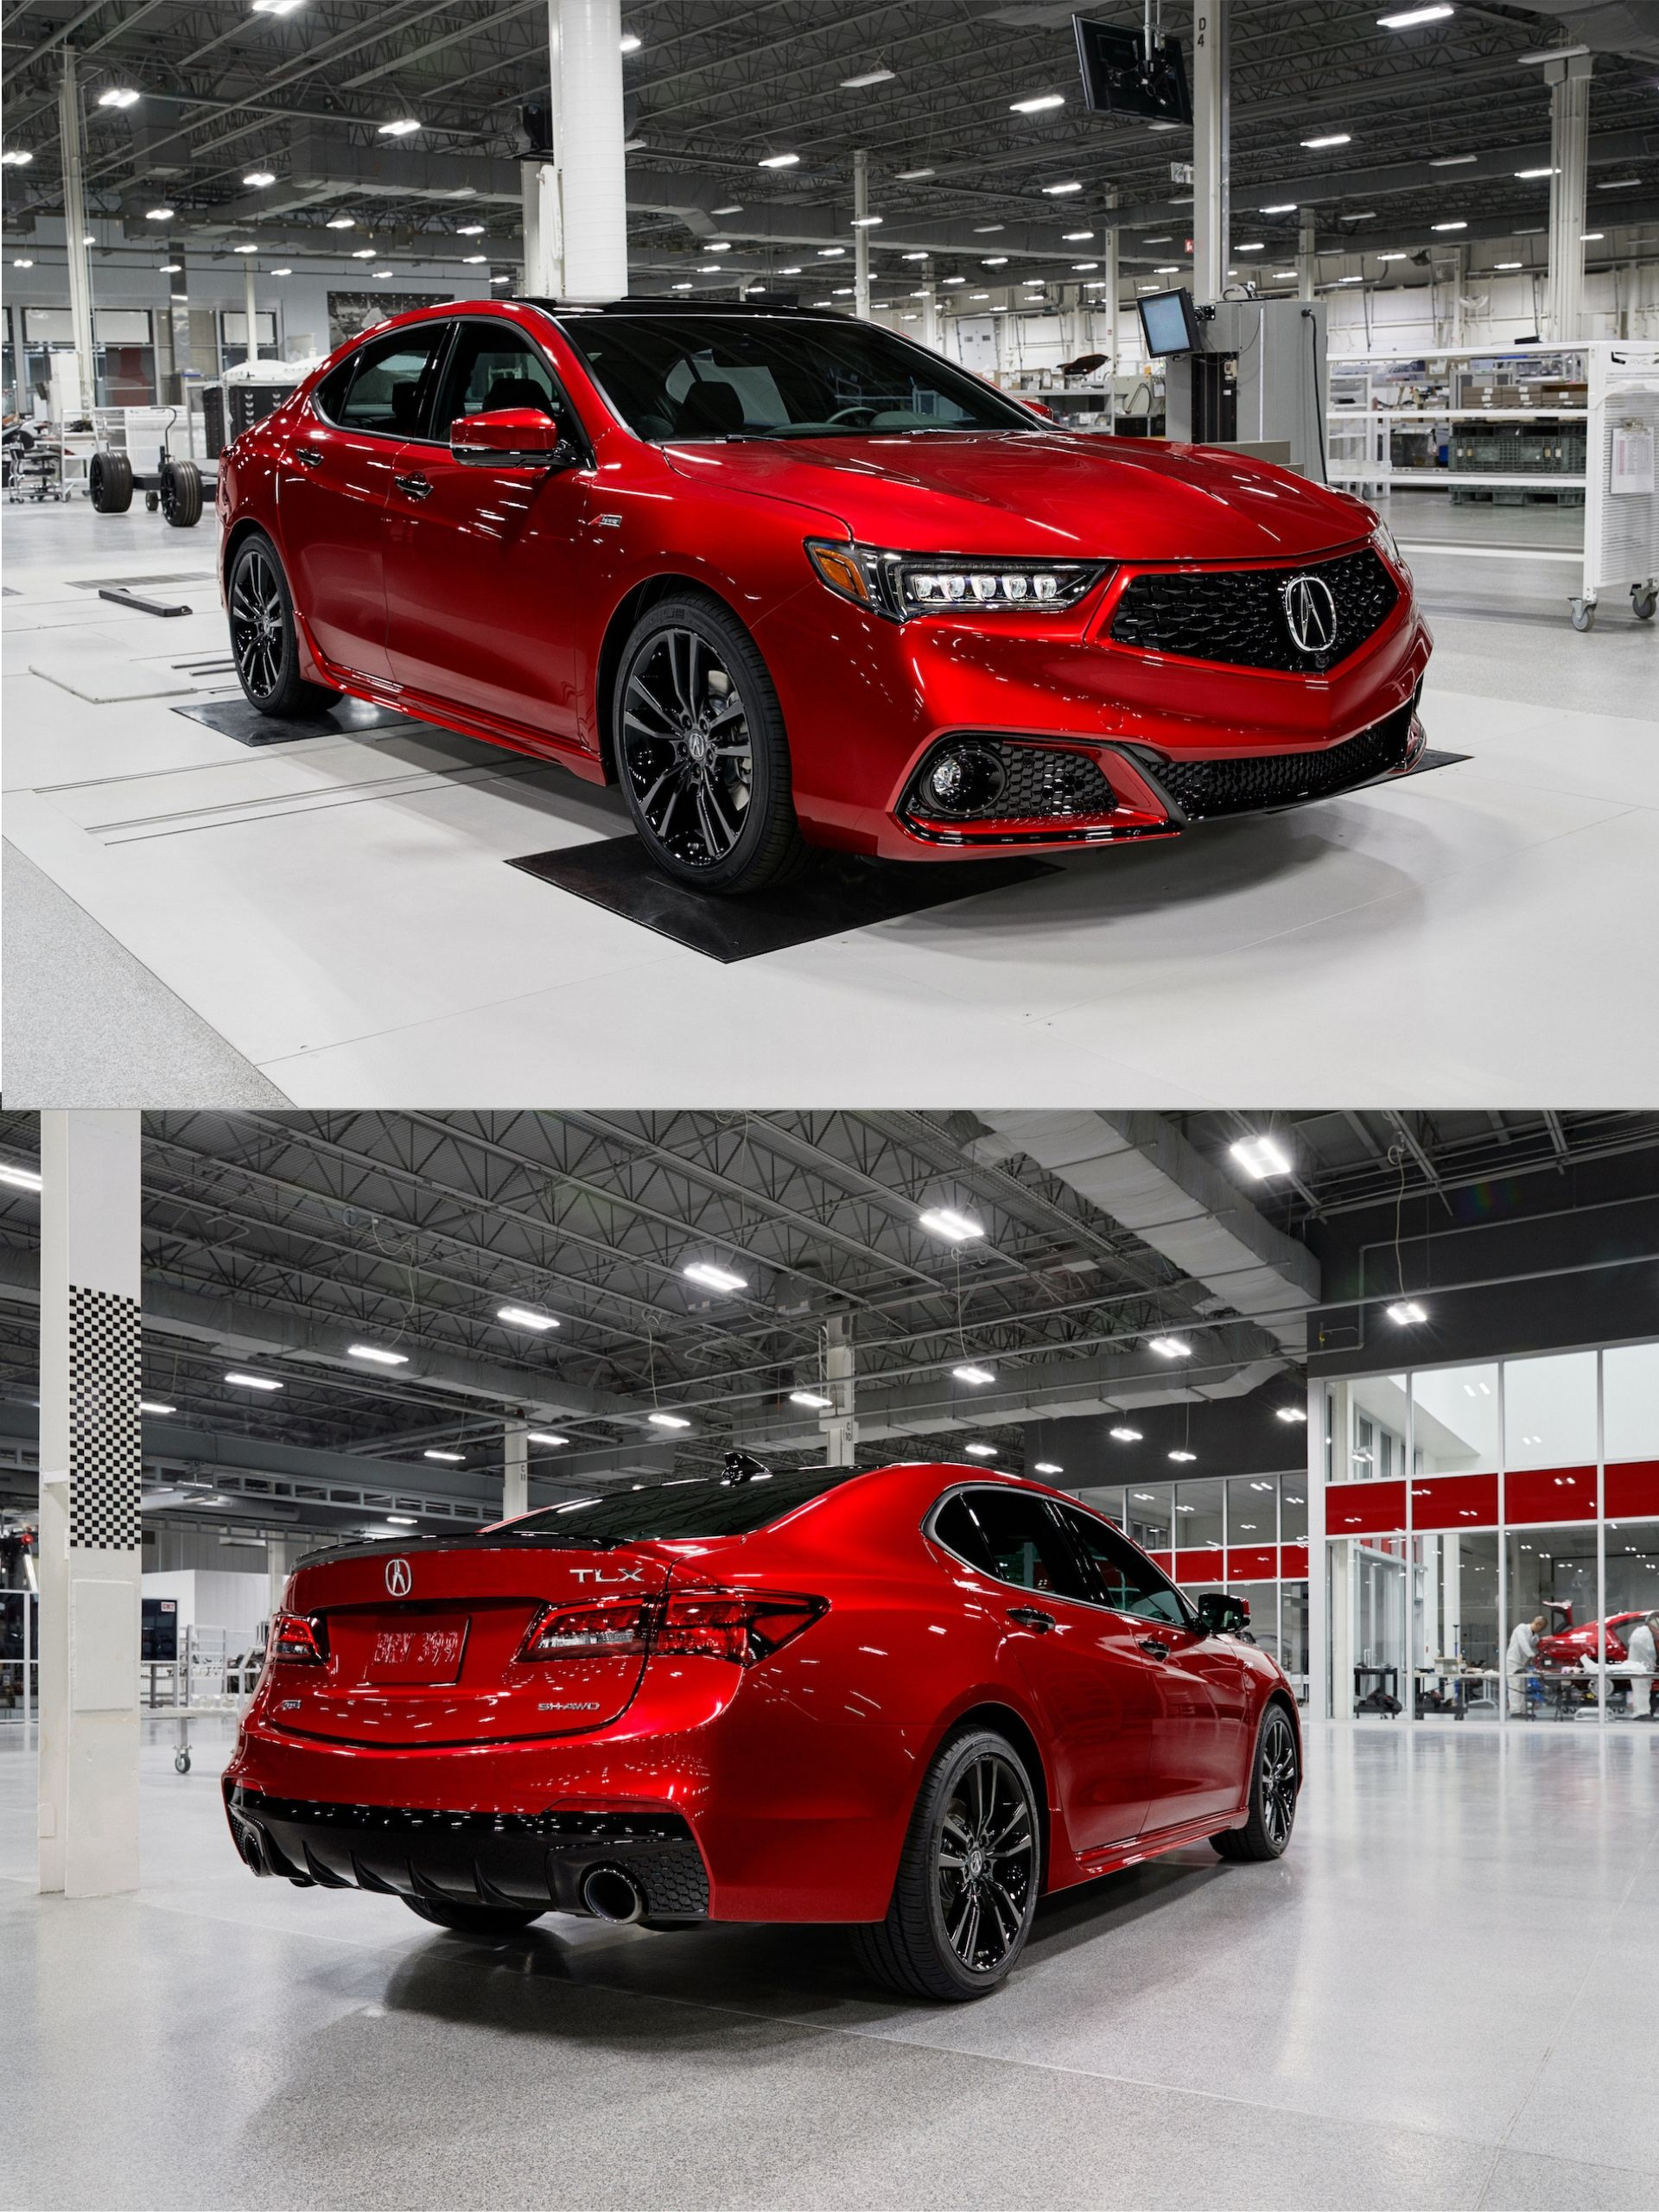 2020 Acura Tlx Pmc Edition Power By 290 Horsepower 3 5 Liter V6 Is